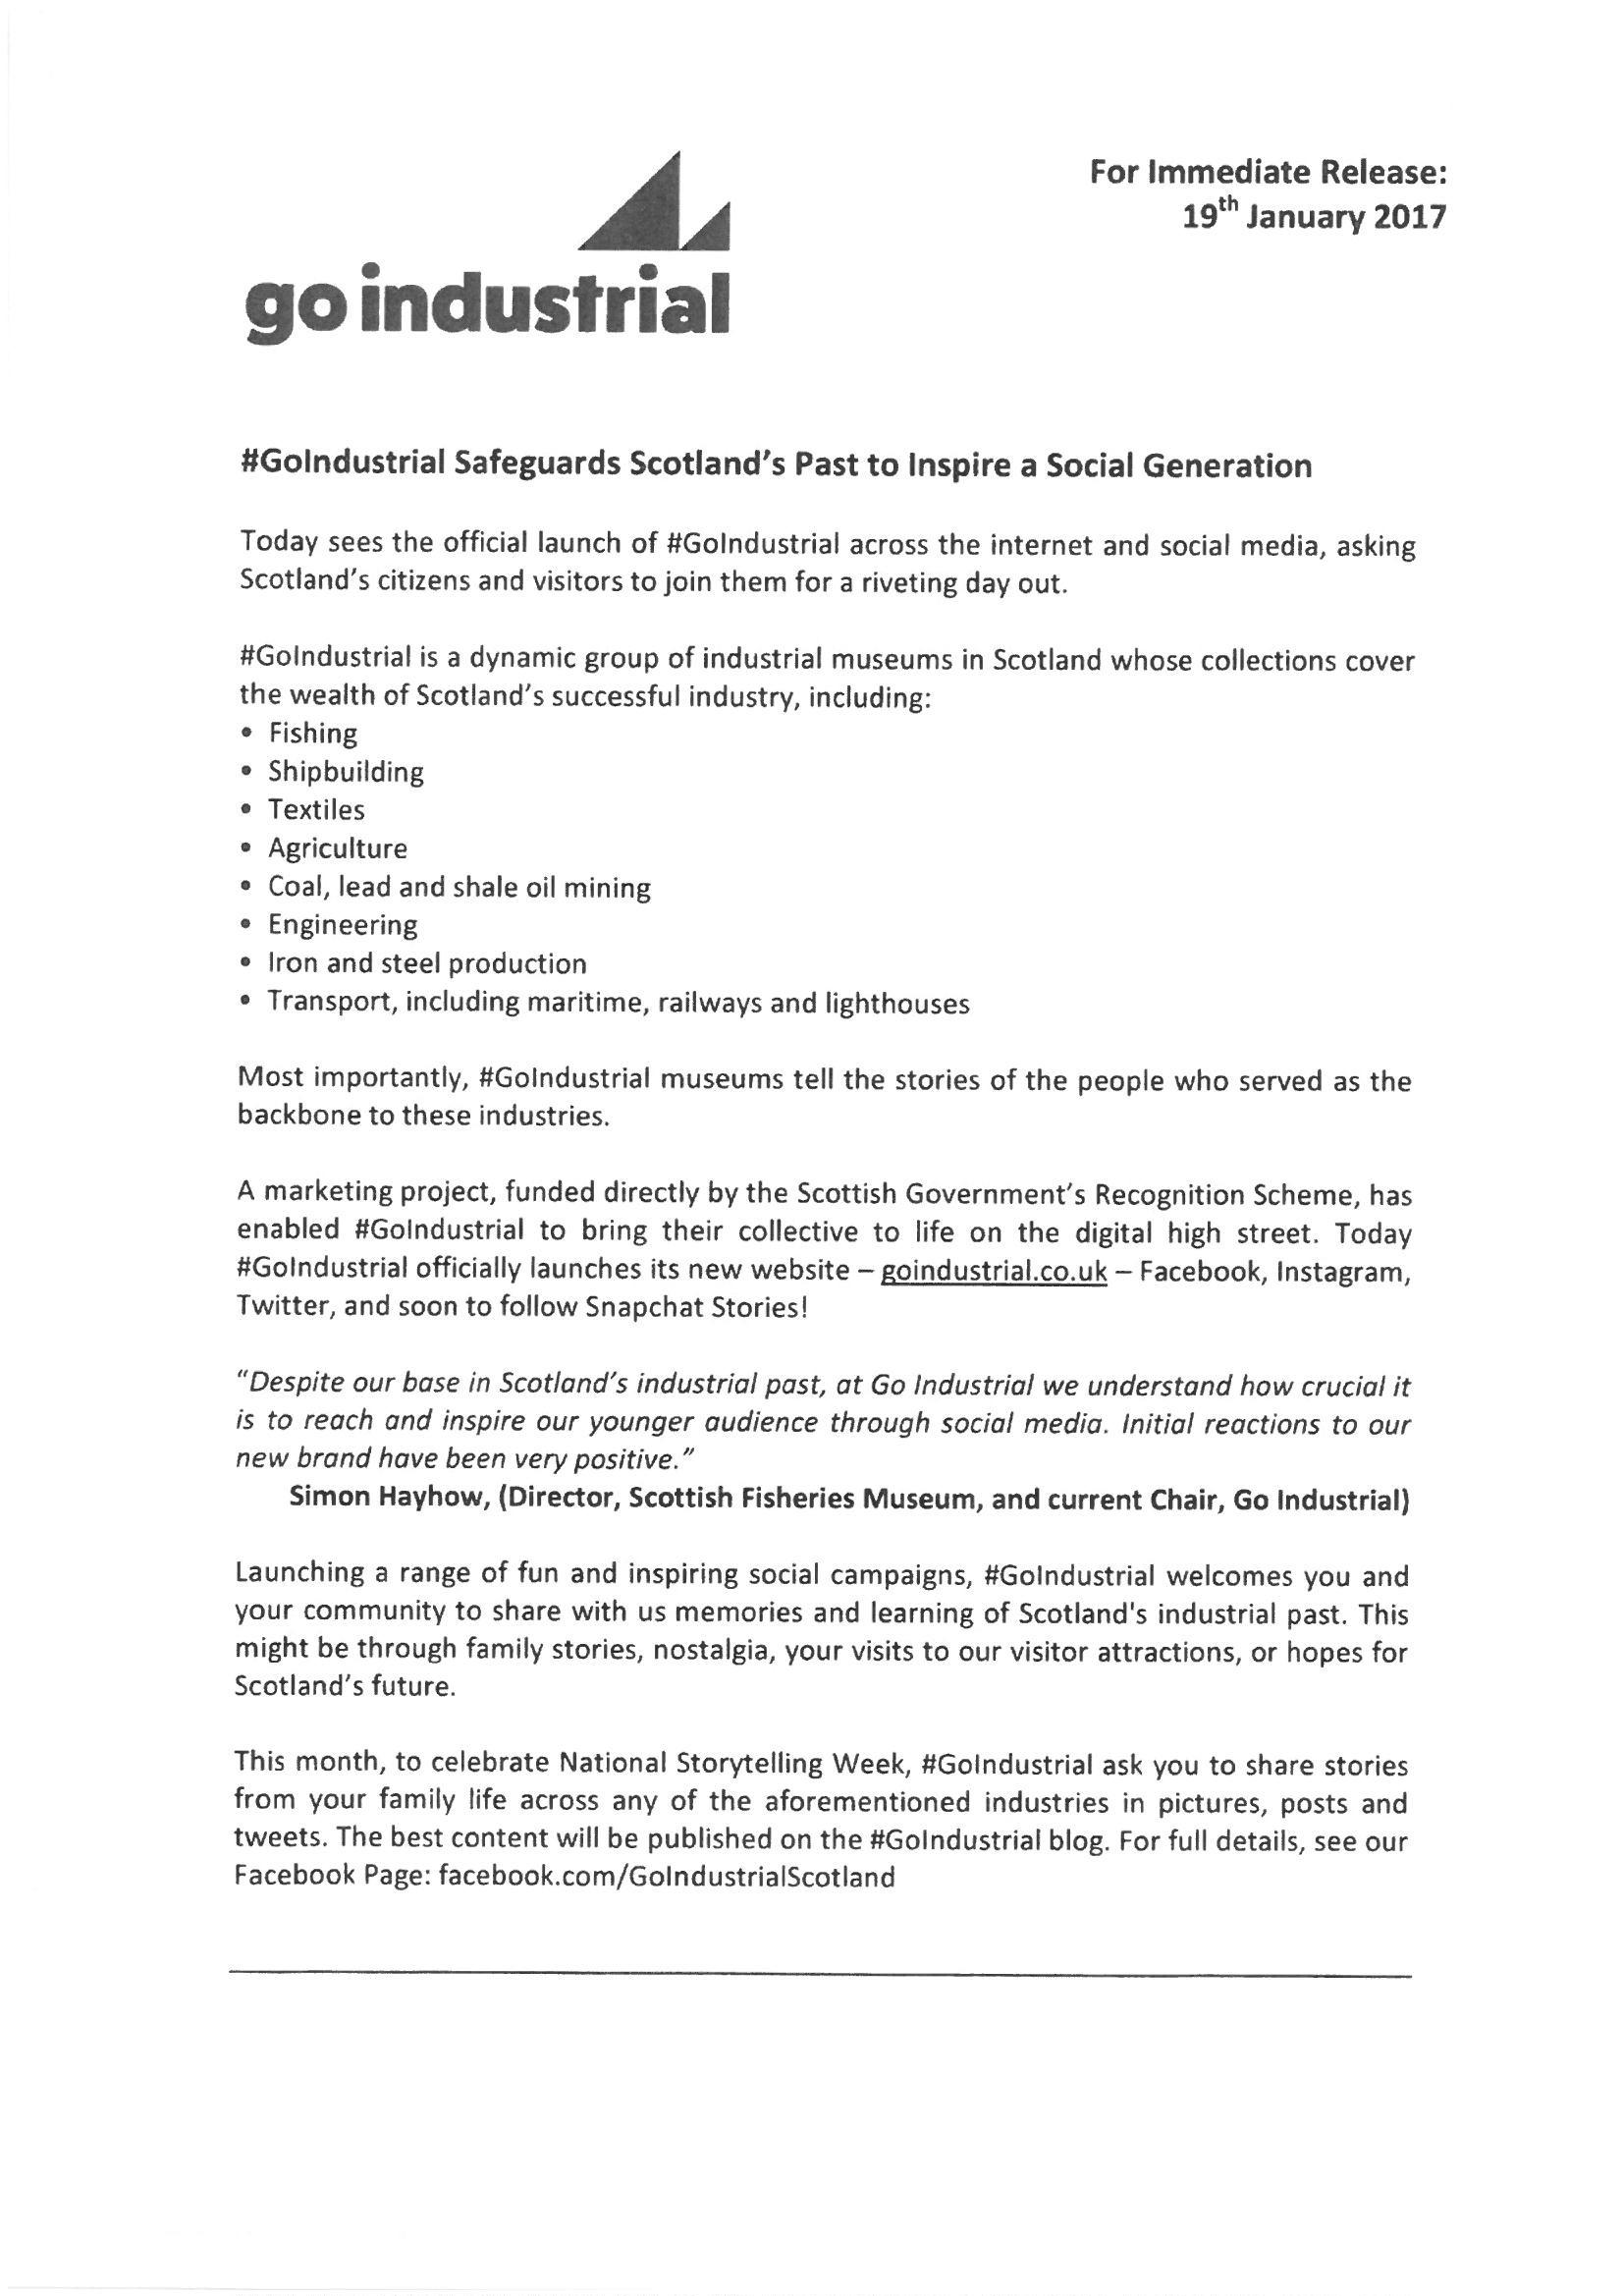 Go Industrial News Release Page 1